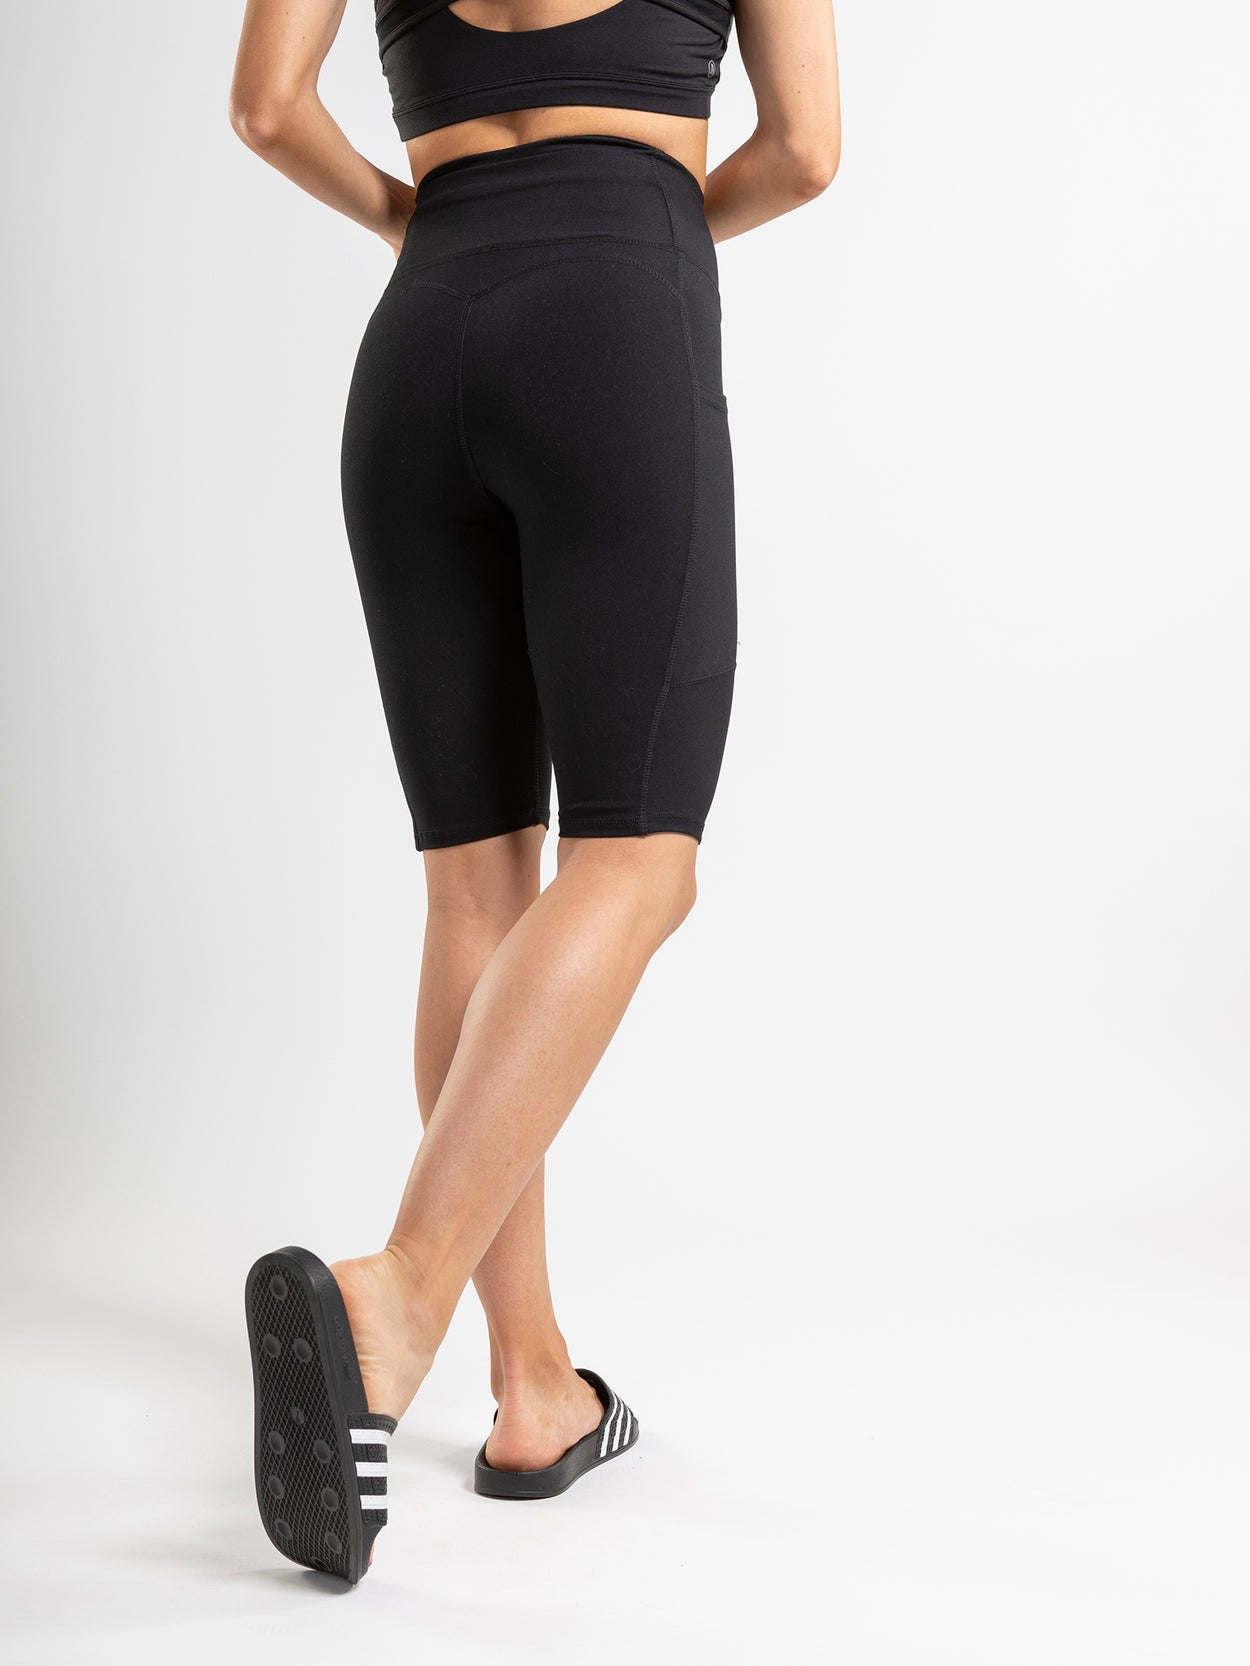 Black biker short with side pockets and a high rise.